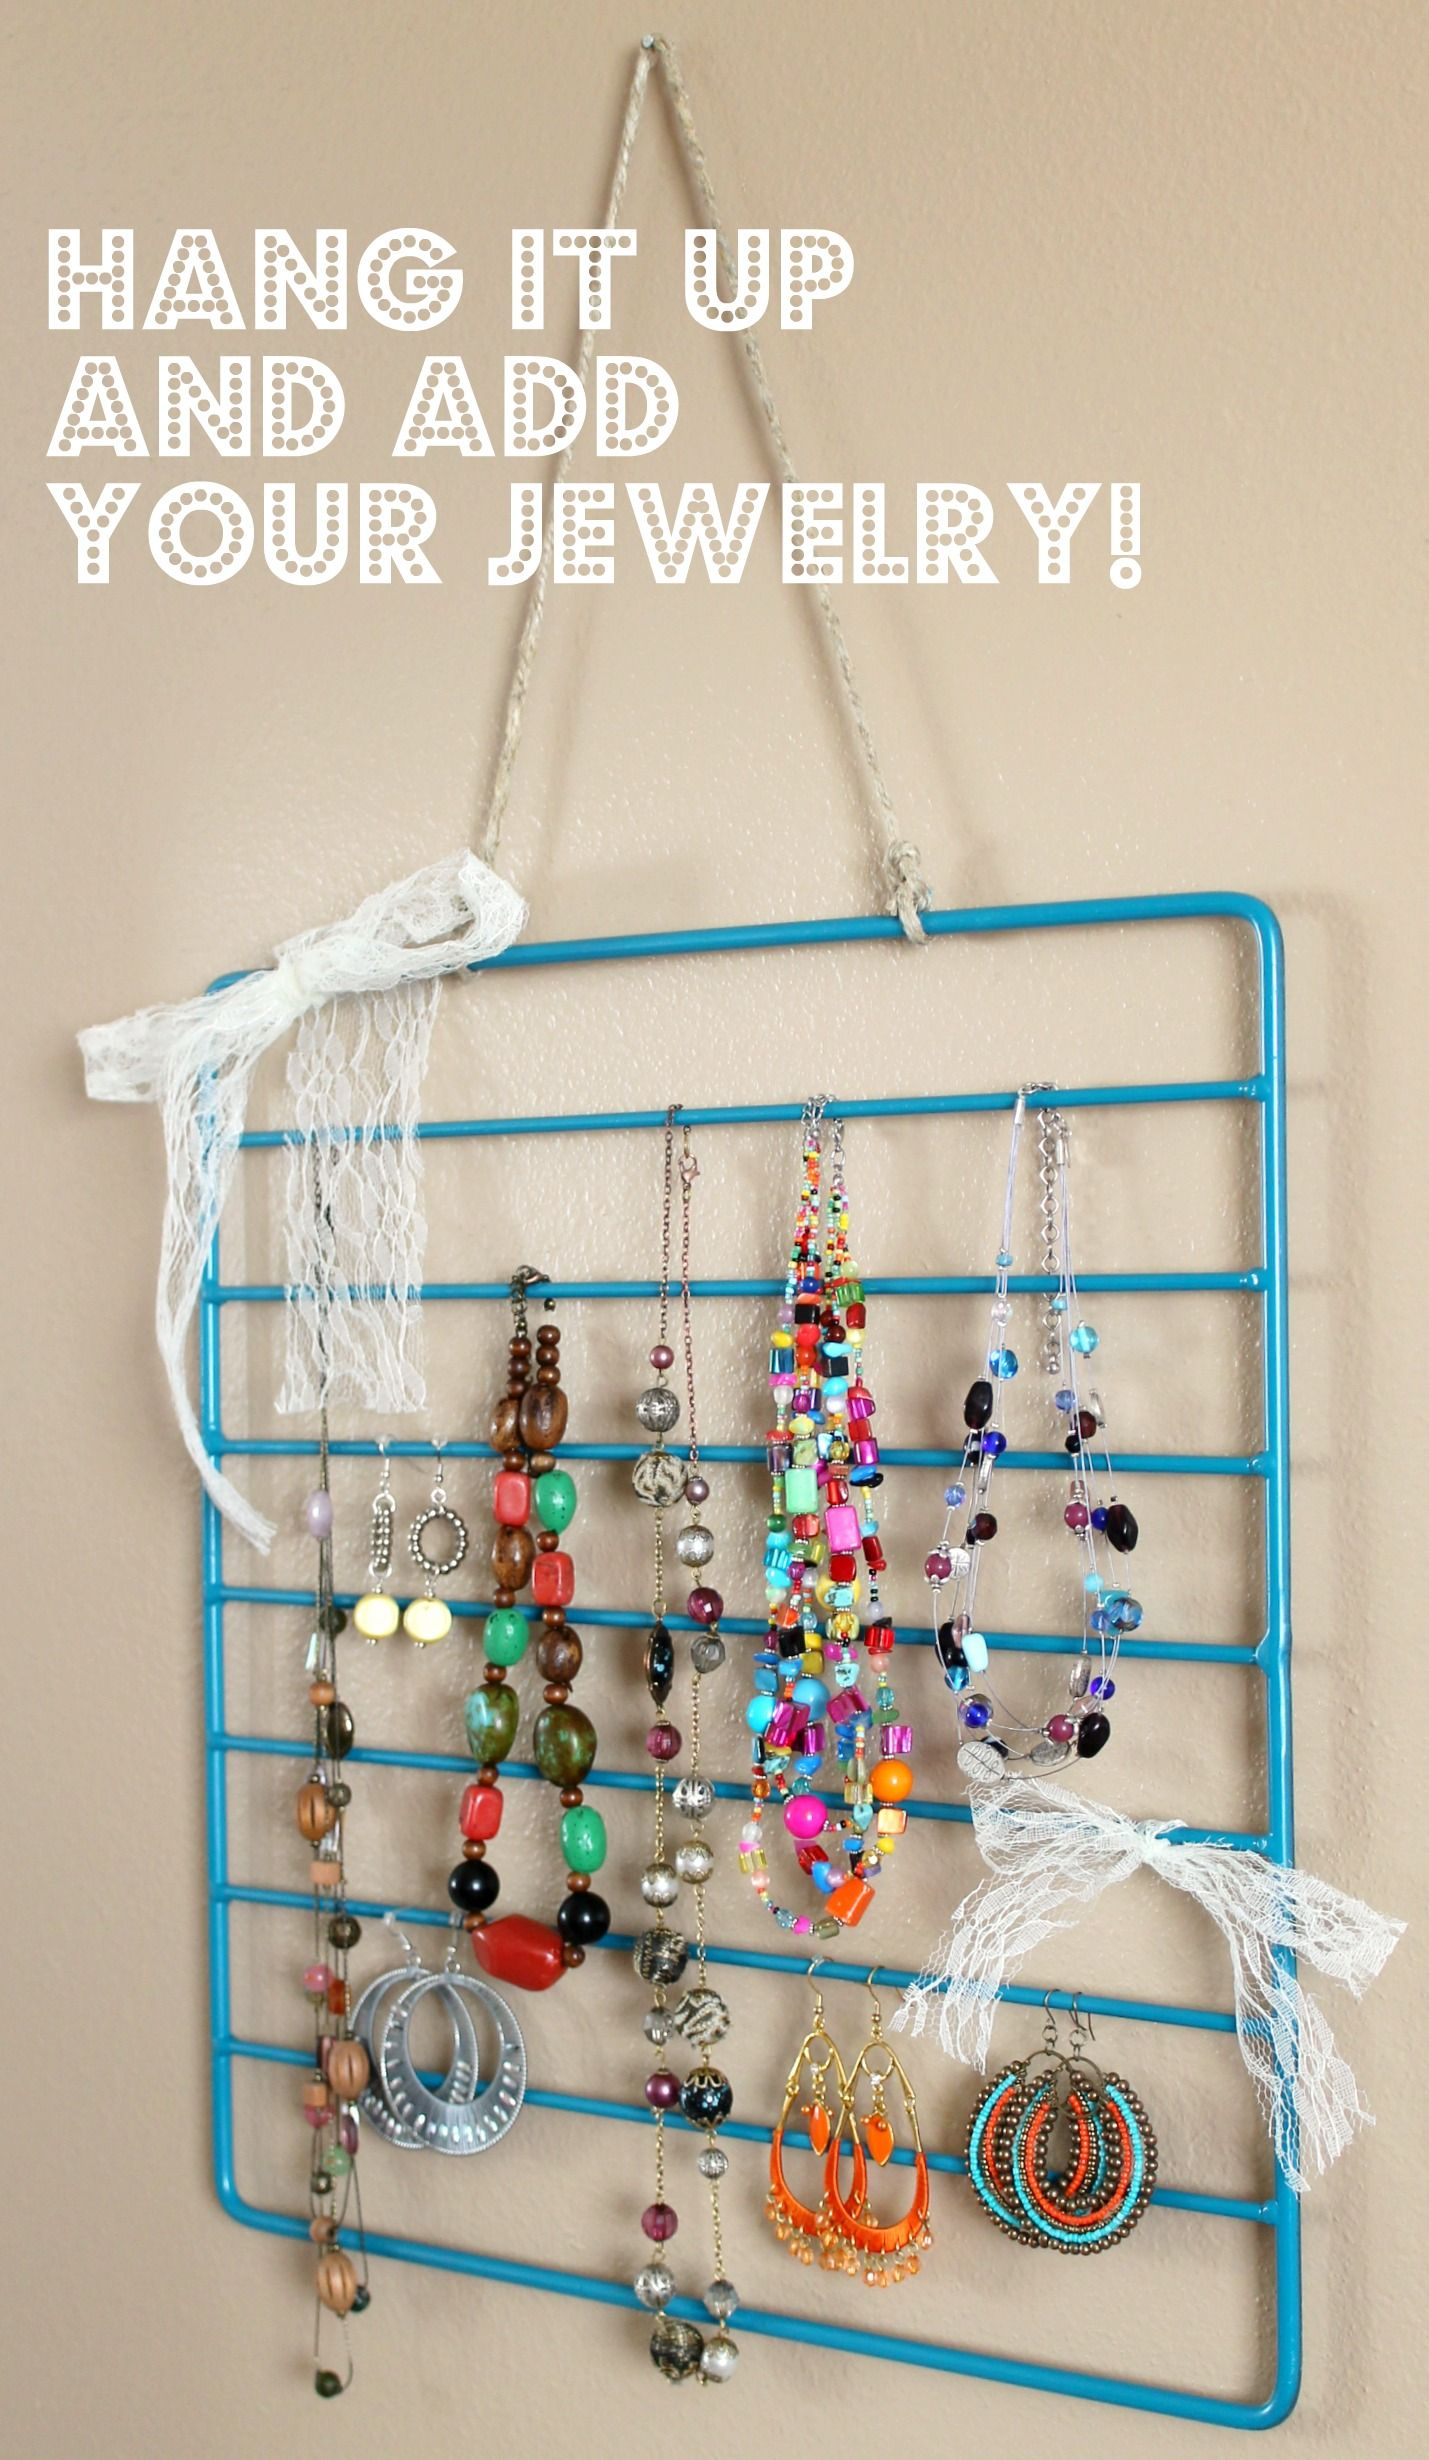 Oven rack to jewelry organizerI may just use this to organize